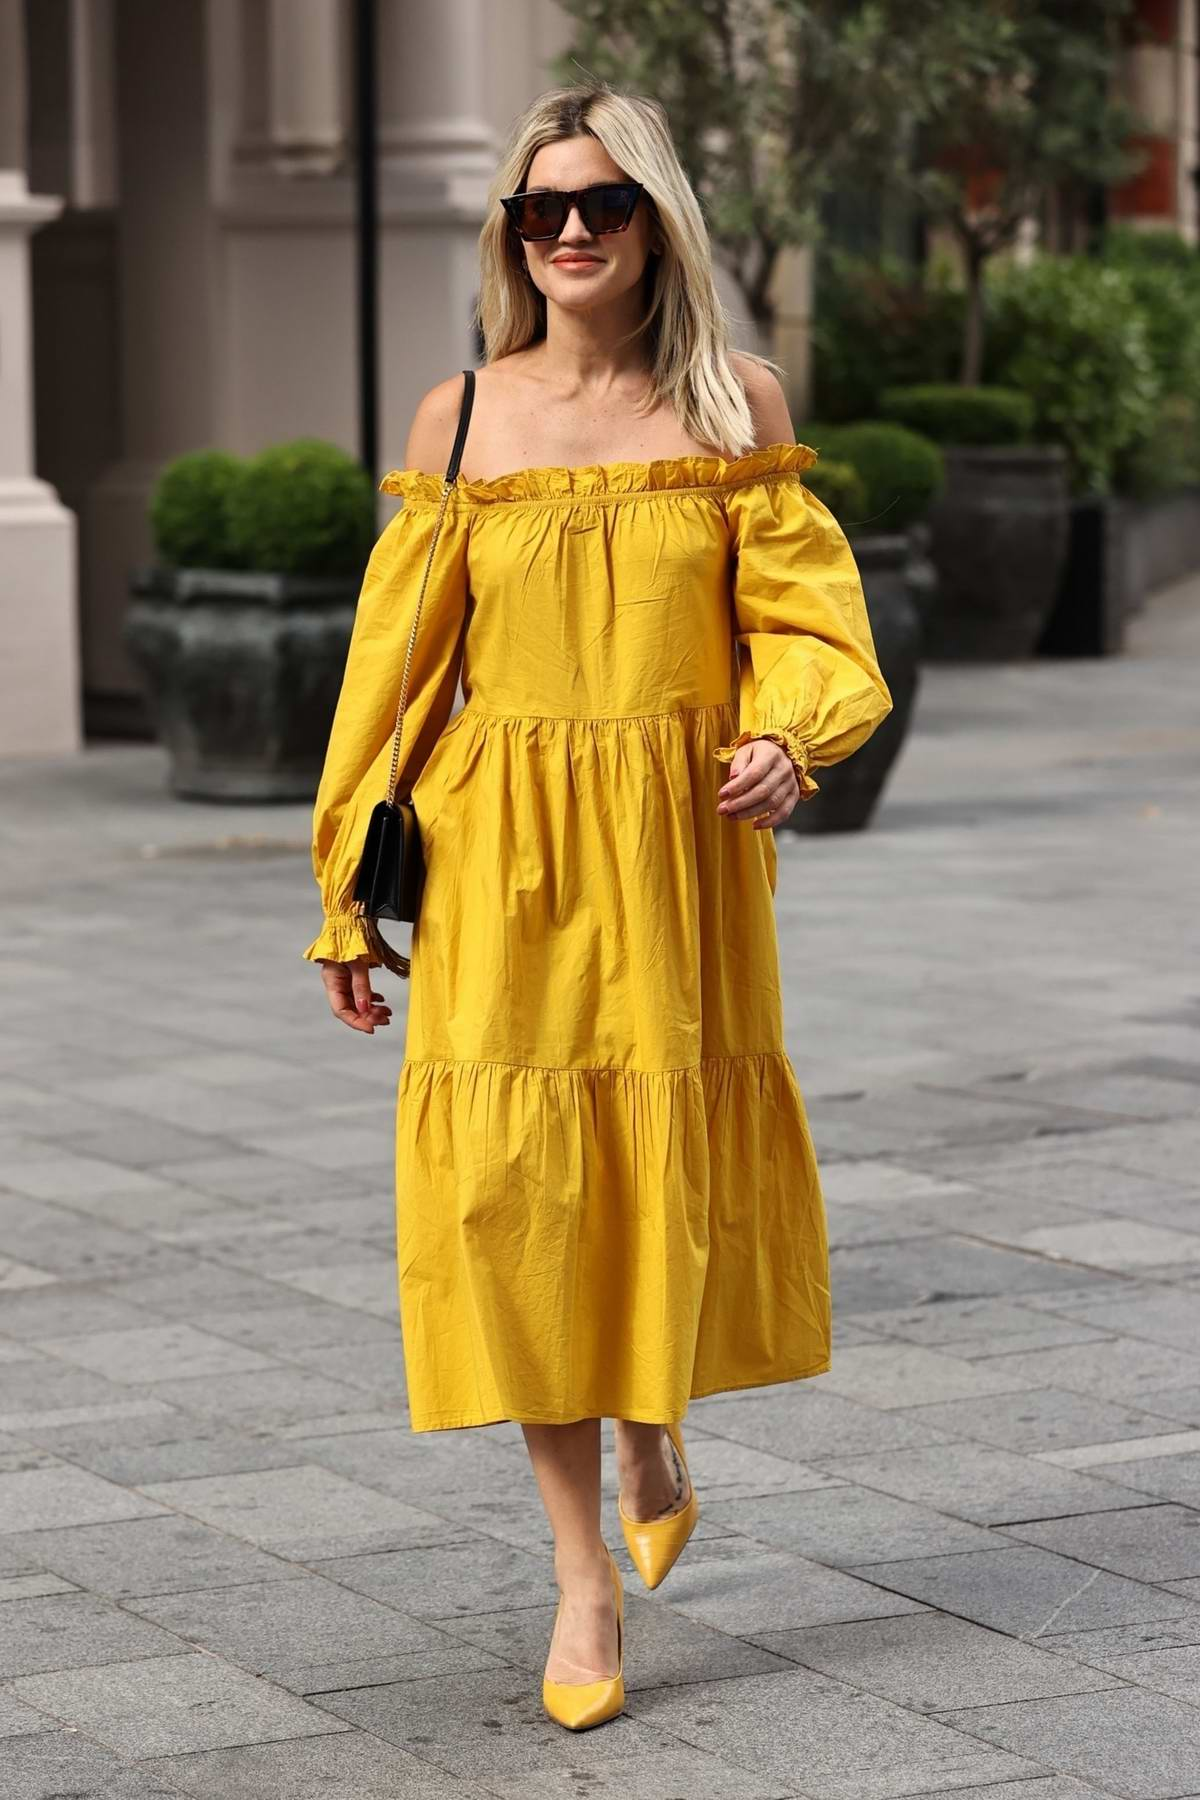 Ashley Roberts looks vibrant in mustard yellow dress as she arrives at Global Radio studios in London, UK